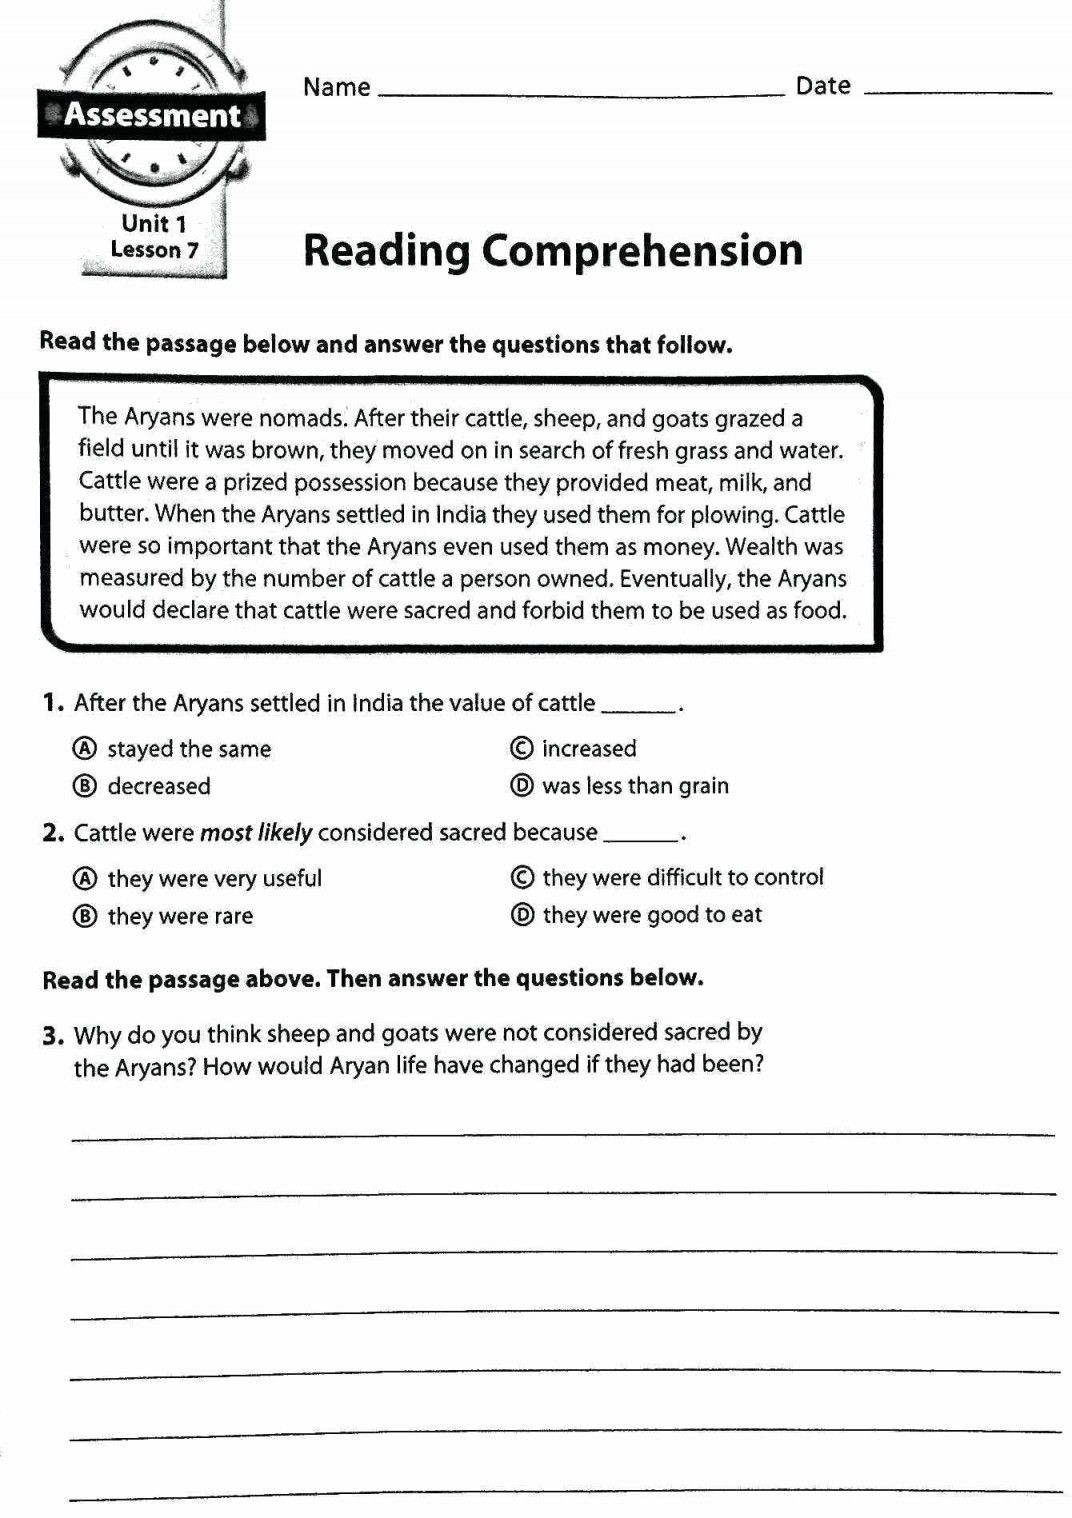 6th grade reading prehension worksheets pdf dolapmagnetbandco throughout 6th grade ela worksheets